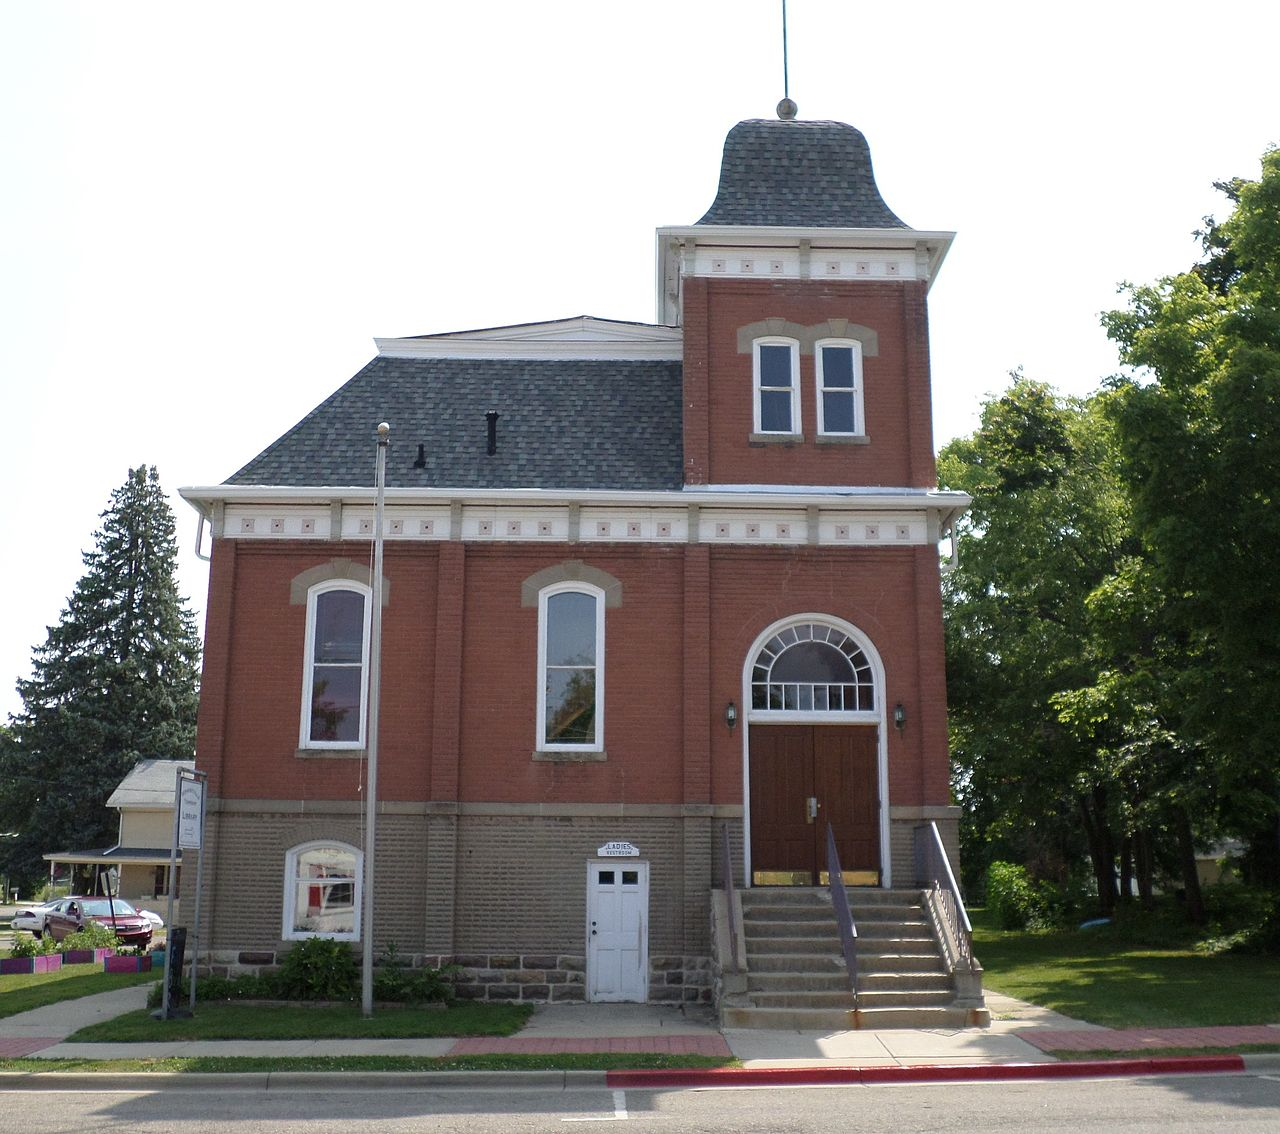 The Vermontville Opera House was built in 1896 and is now used as the town's library.